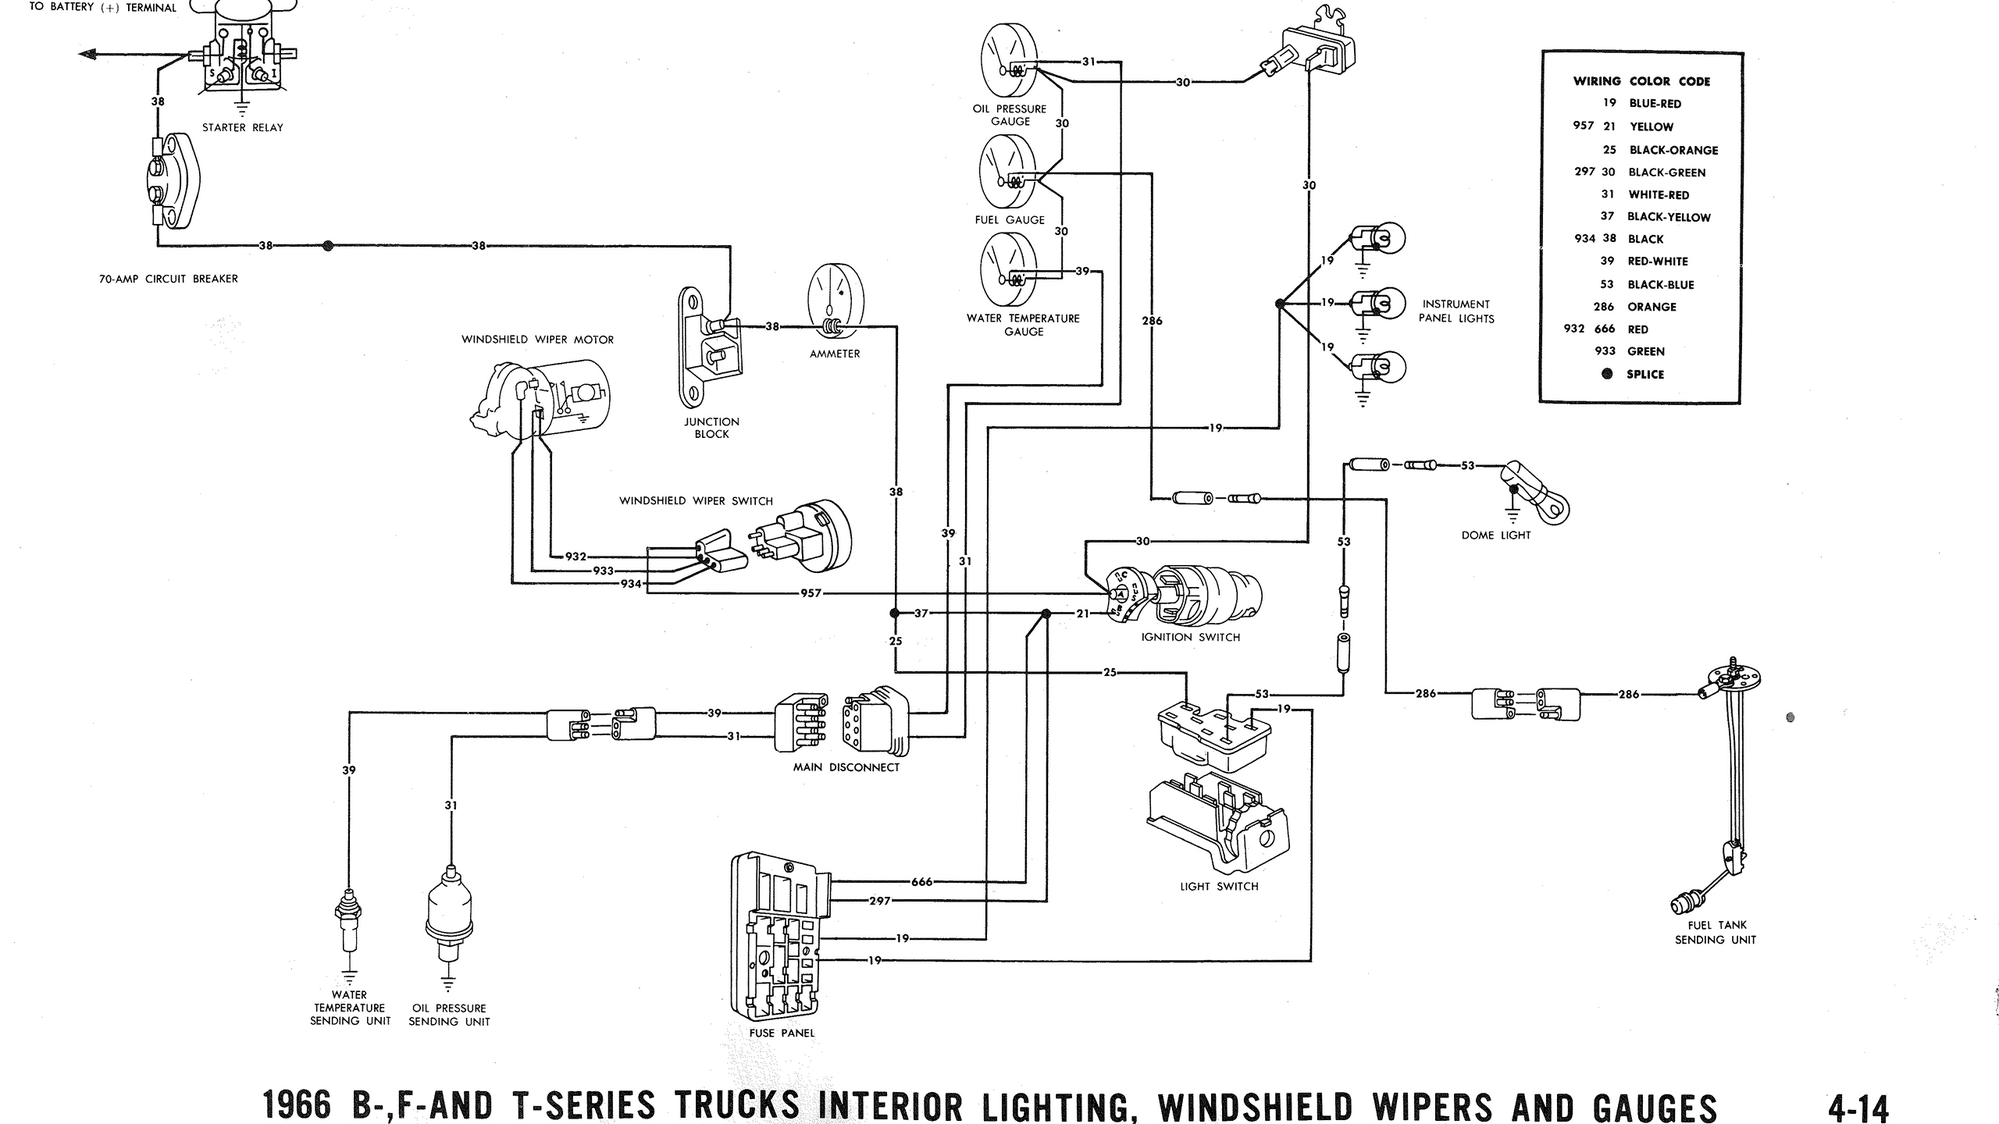 A Ford Ignition Switch Wiring Diagram For 2000